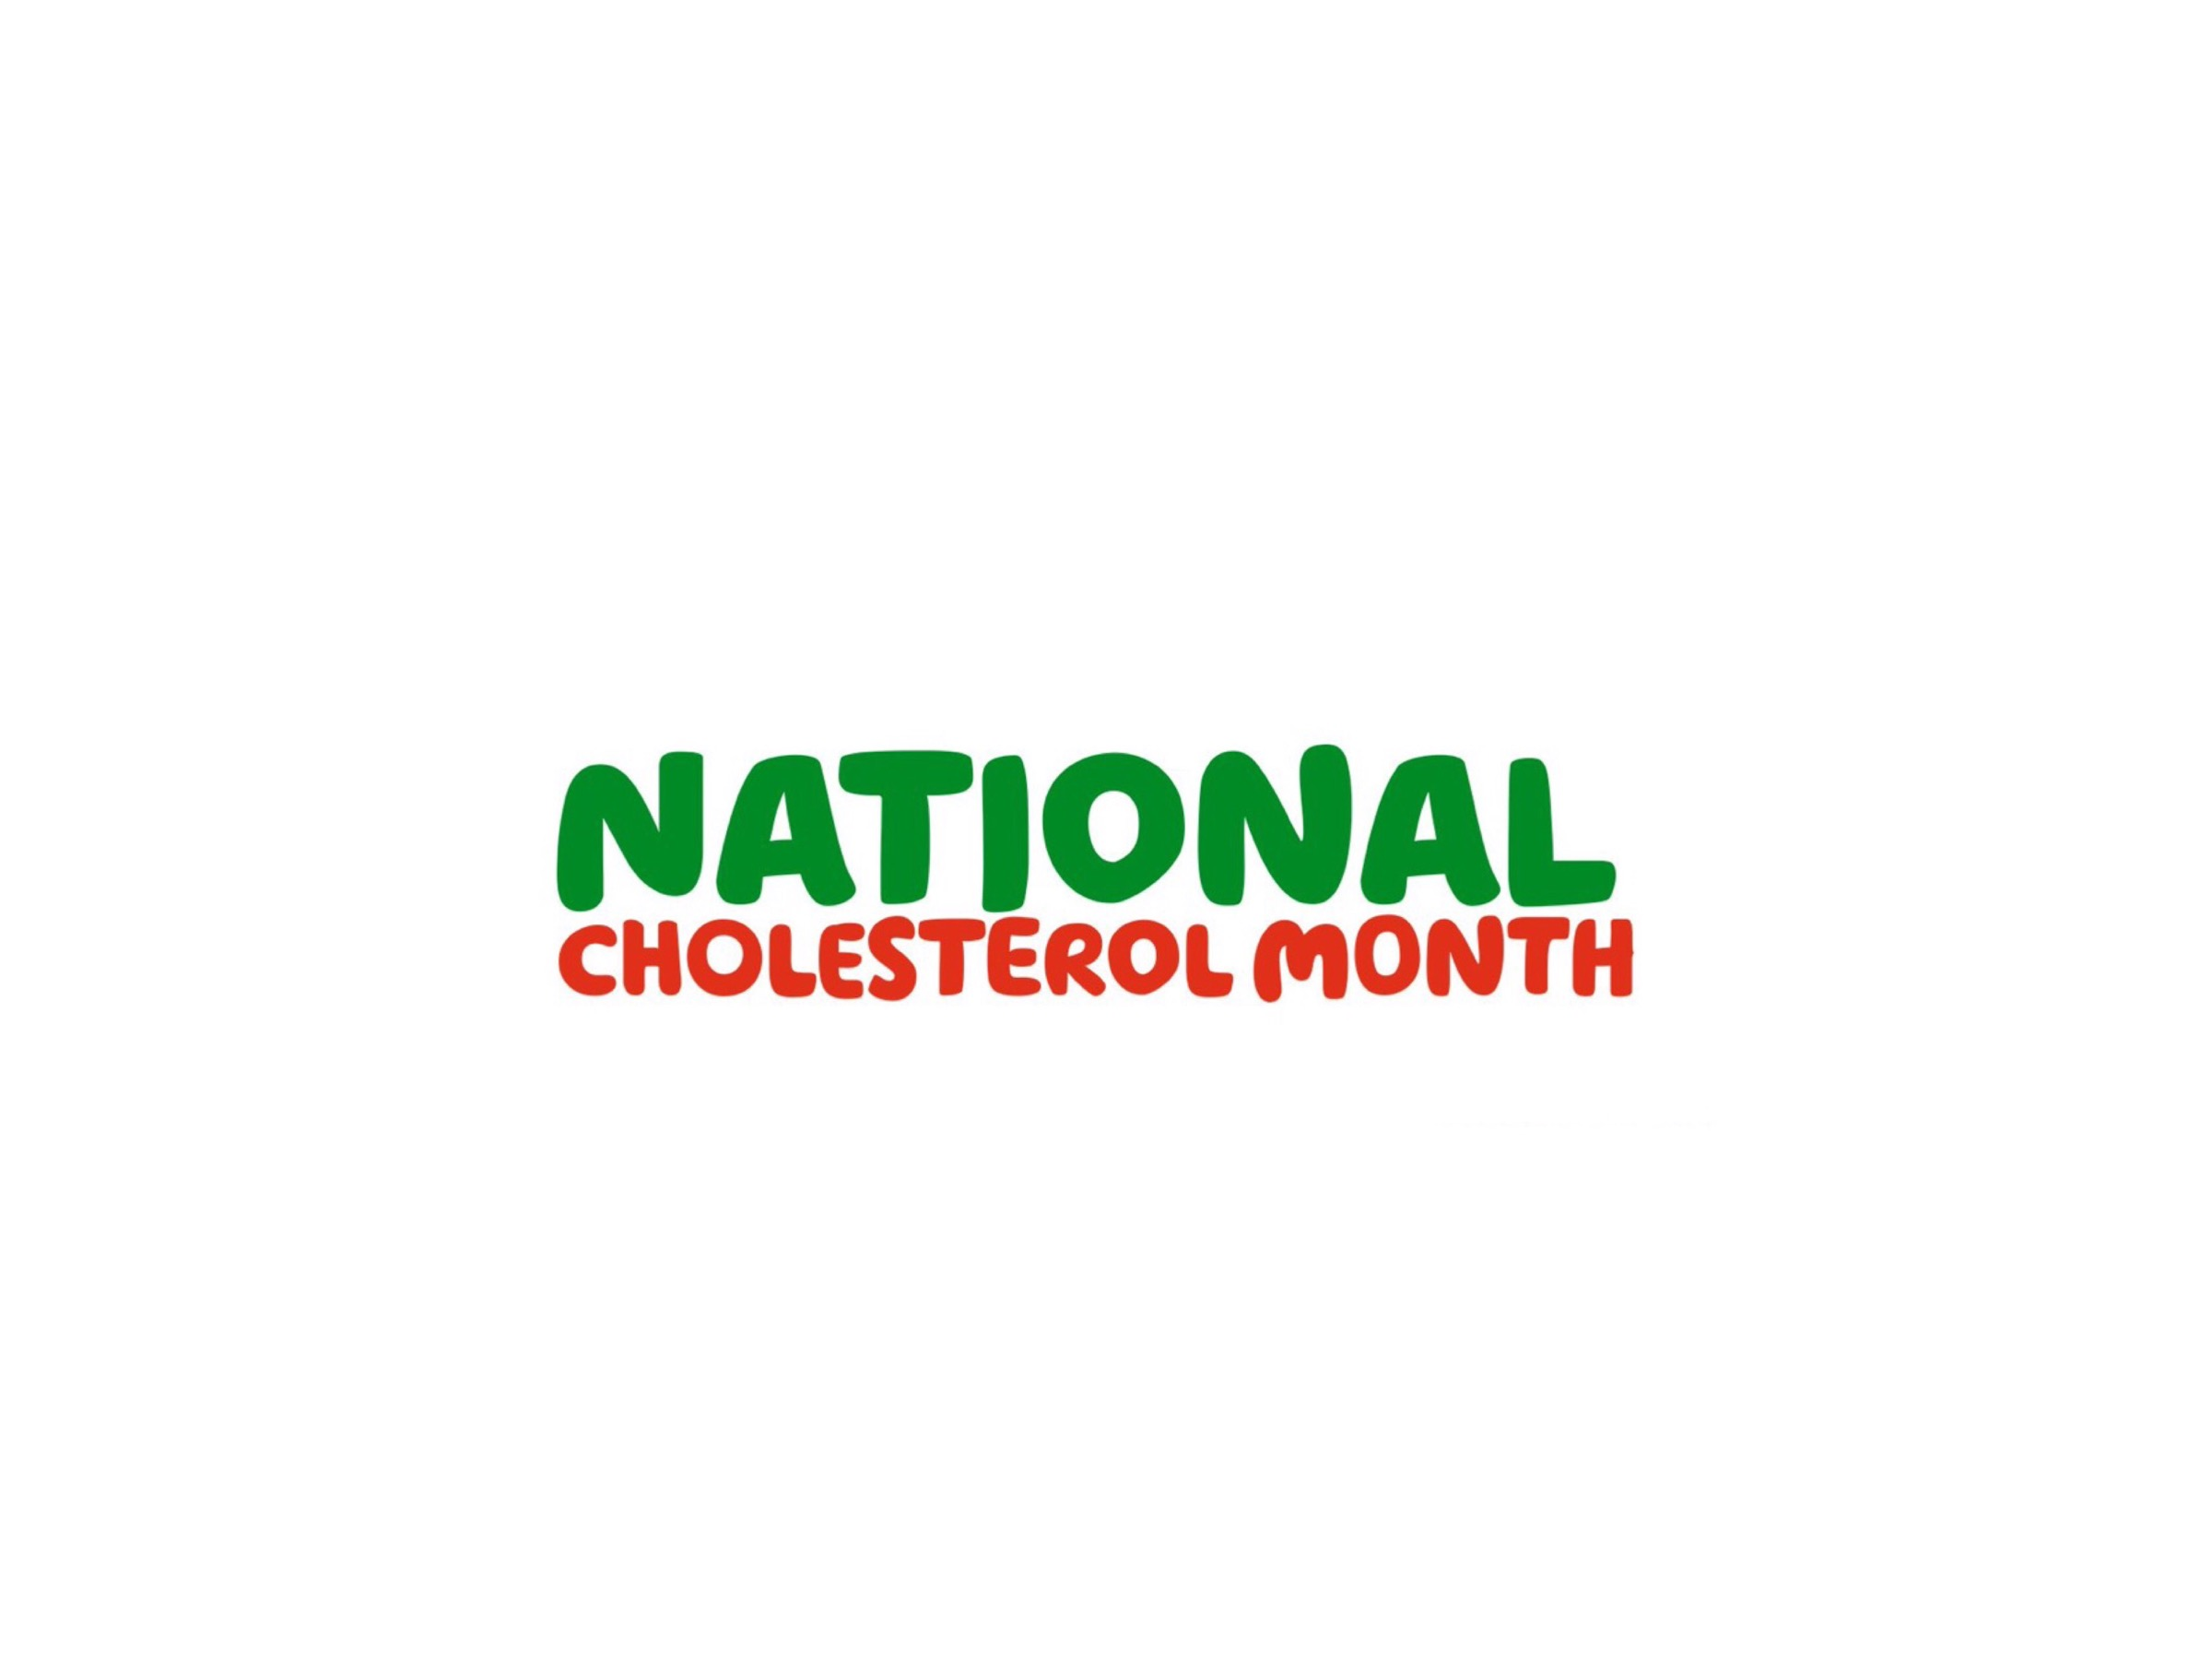 national cholesterol month